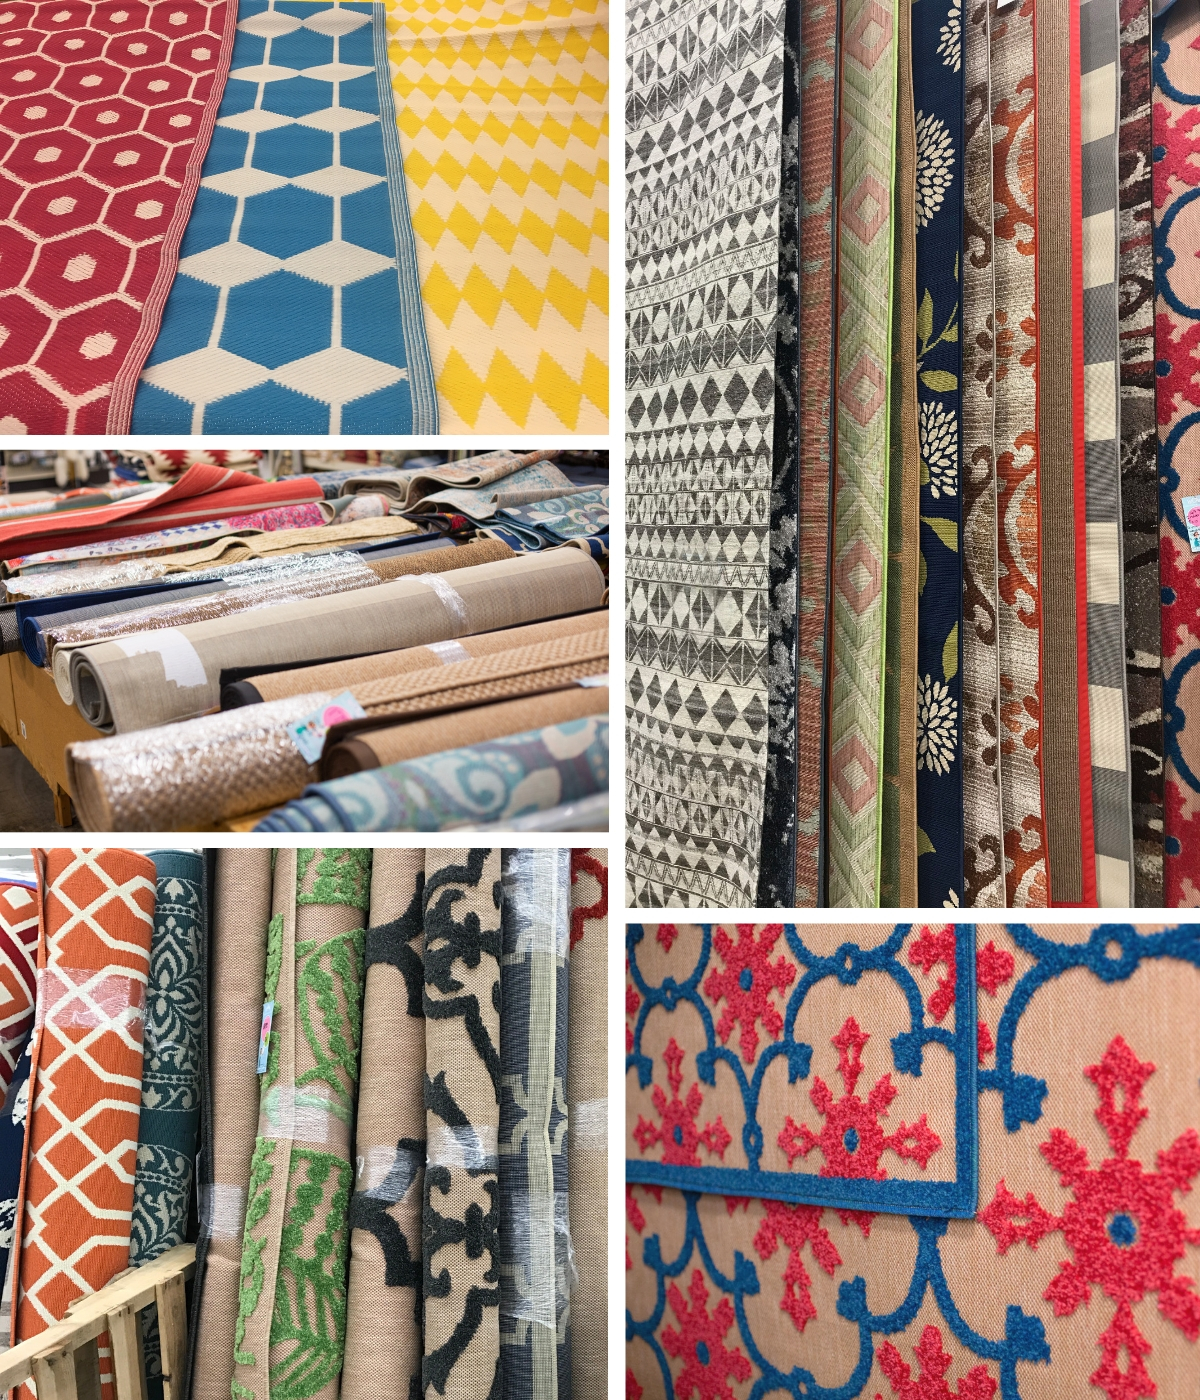 Round Outdoor Rug Or Runner Carolina Pottery Has What You Need We Also Stock An Ortment Of Sizes Ranging From 2x3 To 8x10